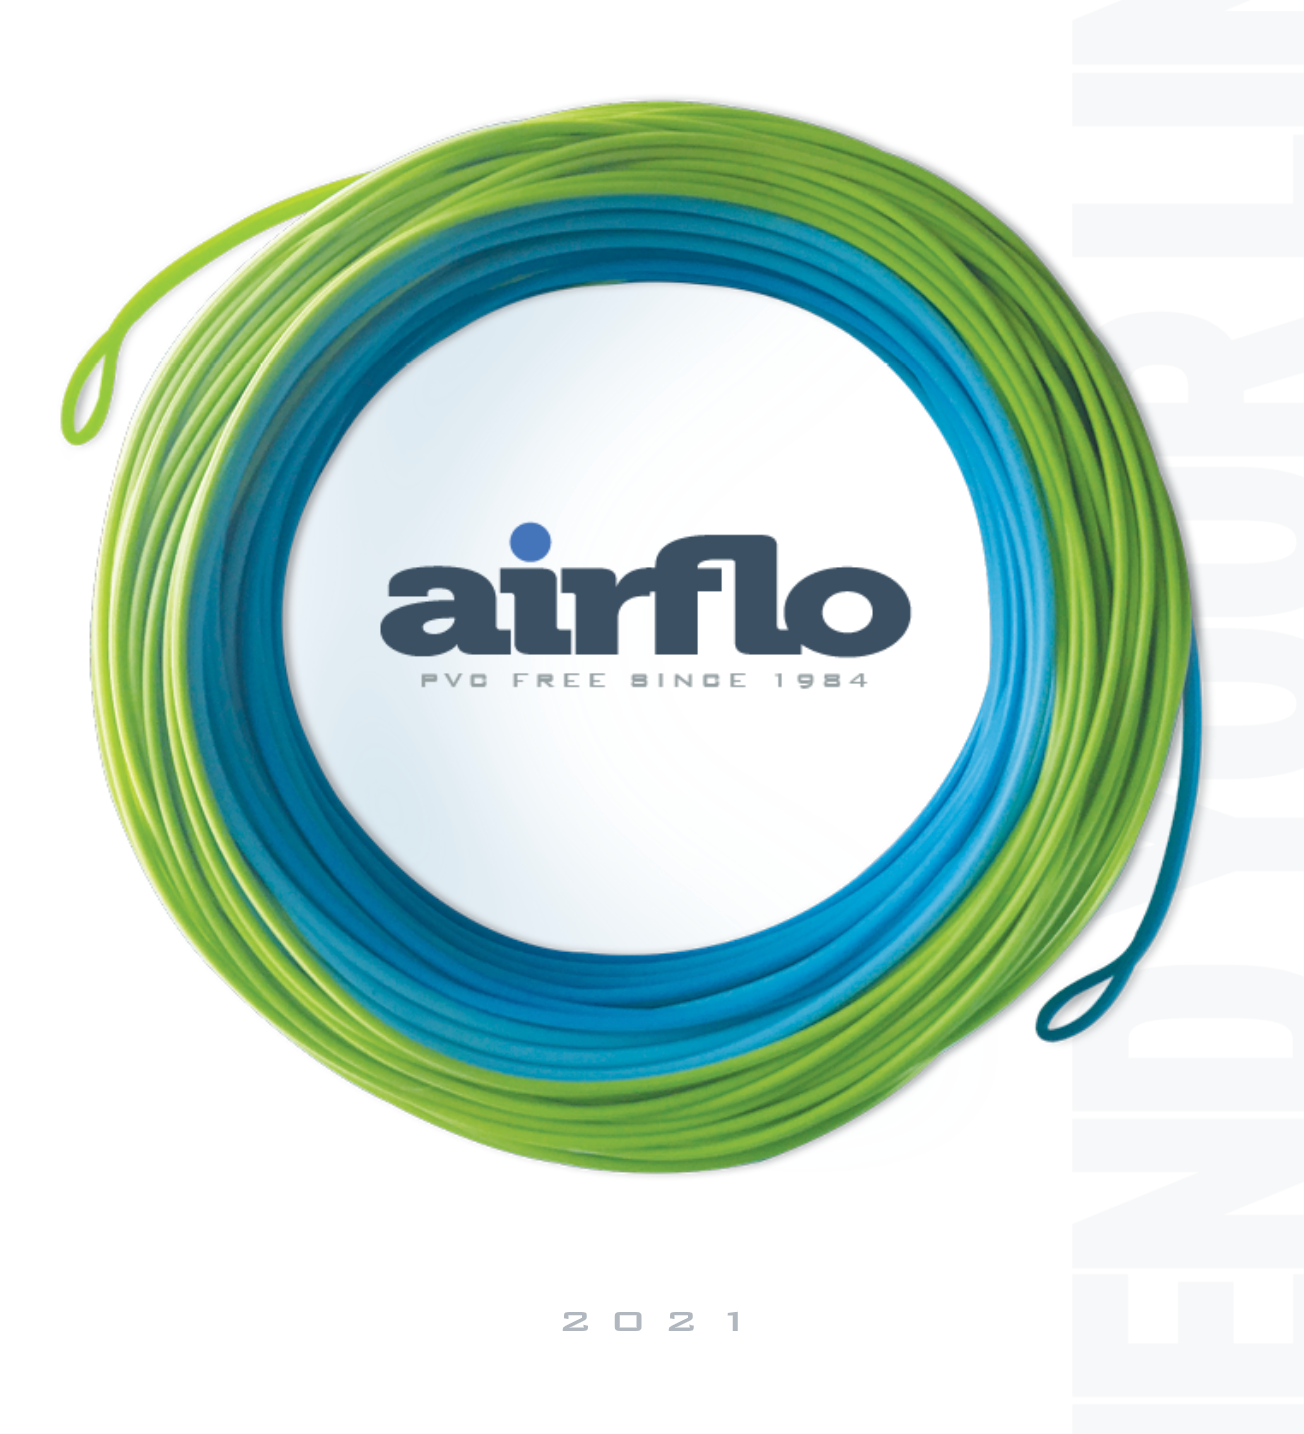 Airflo Tactical Taper Fly Line with free polyleader